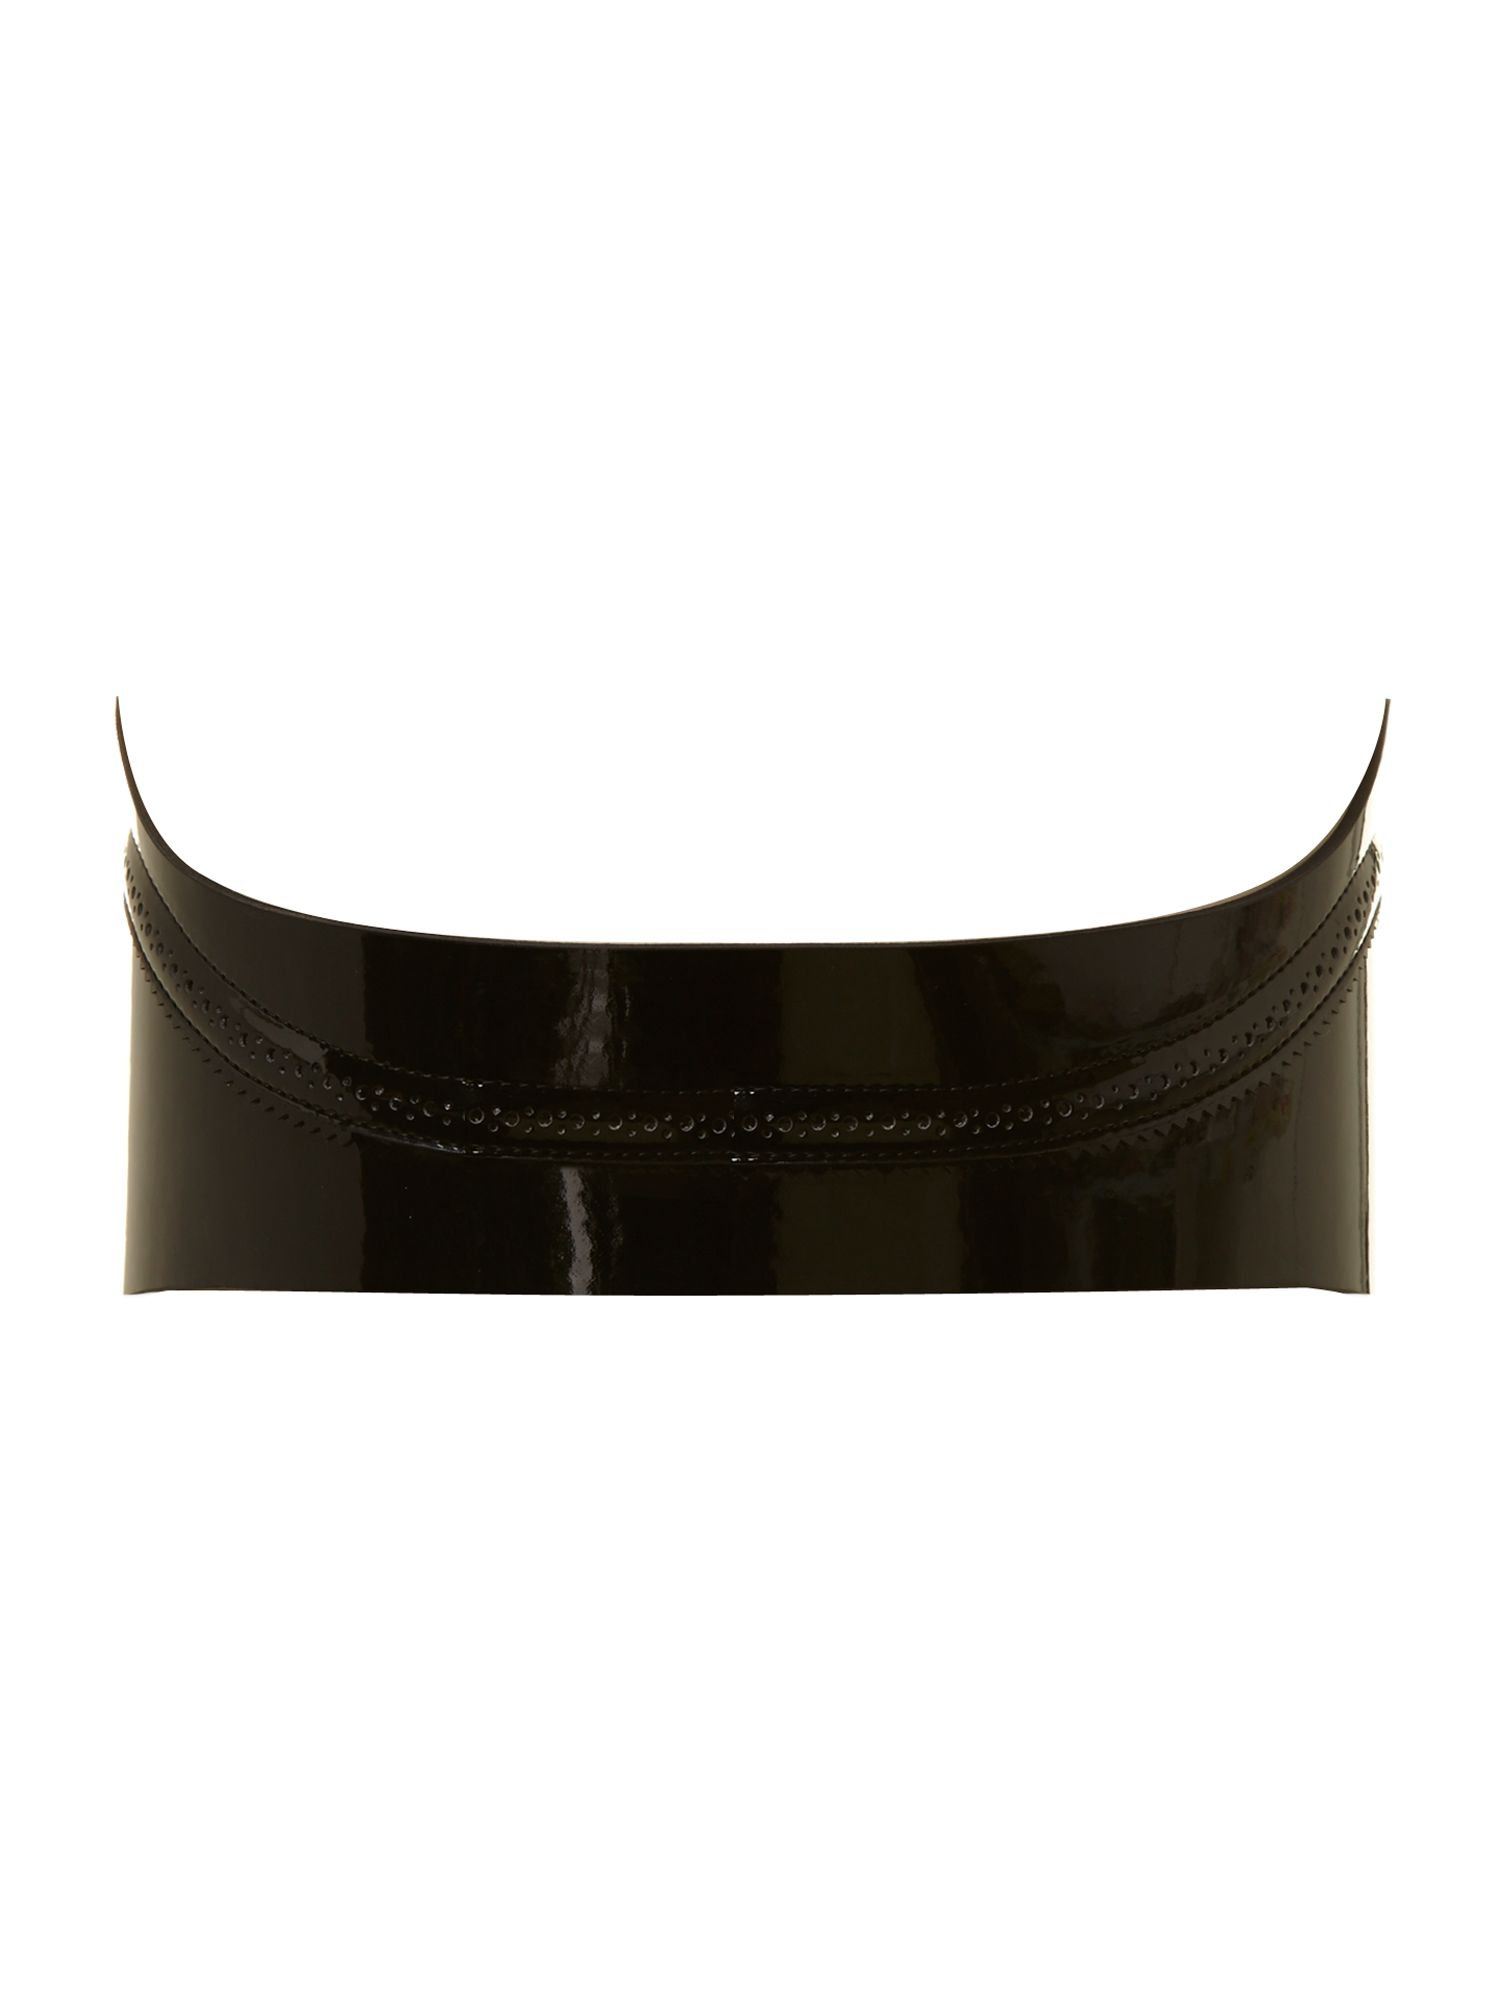 Patent leather waist zip belt